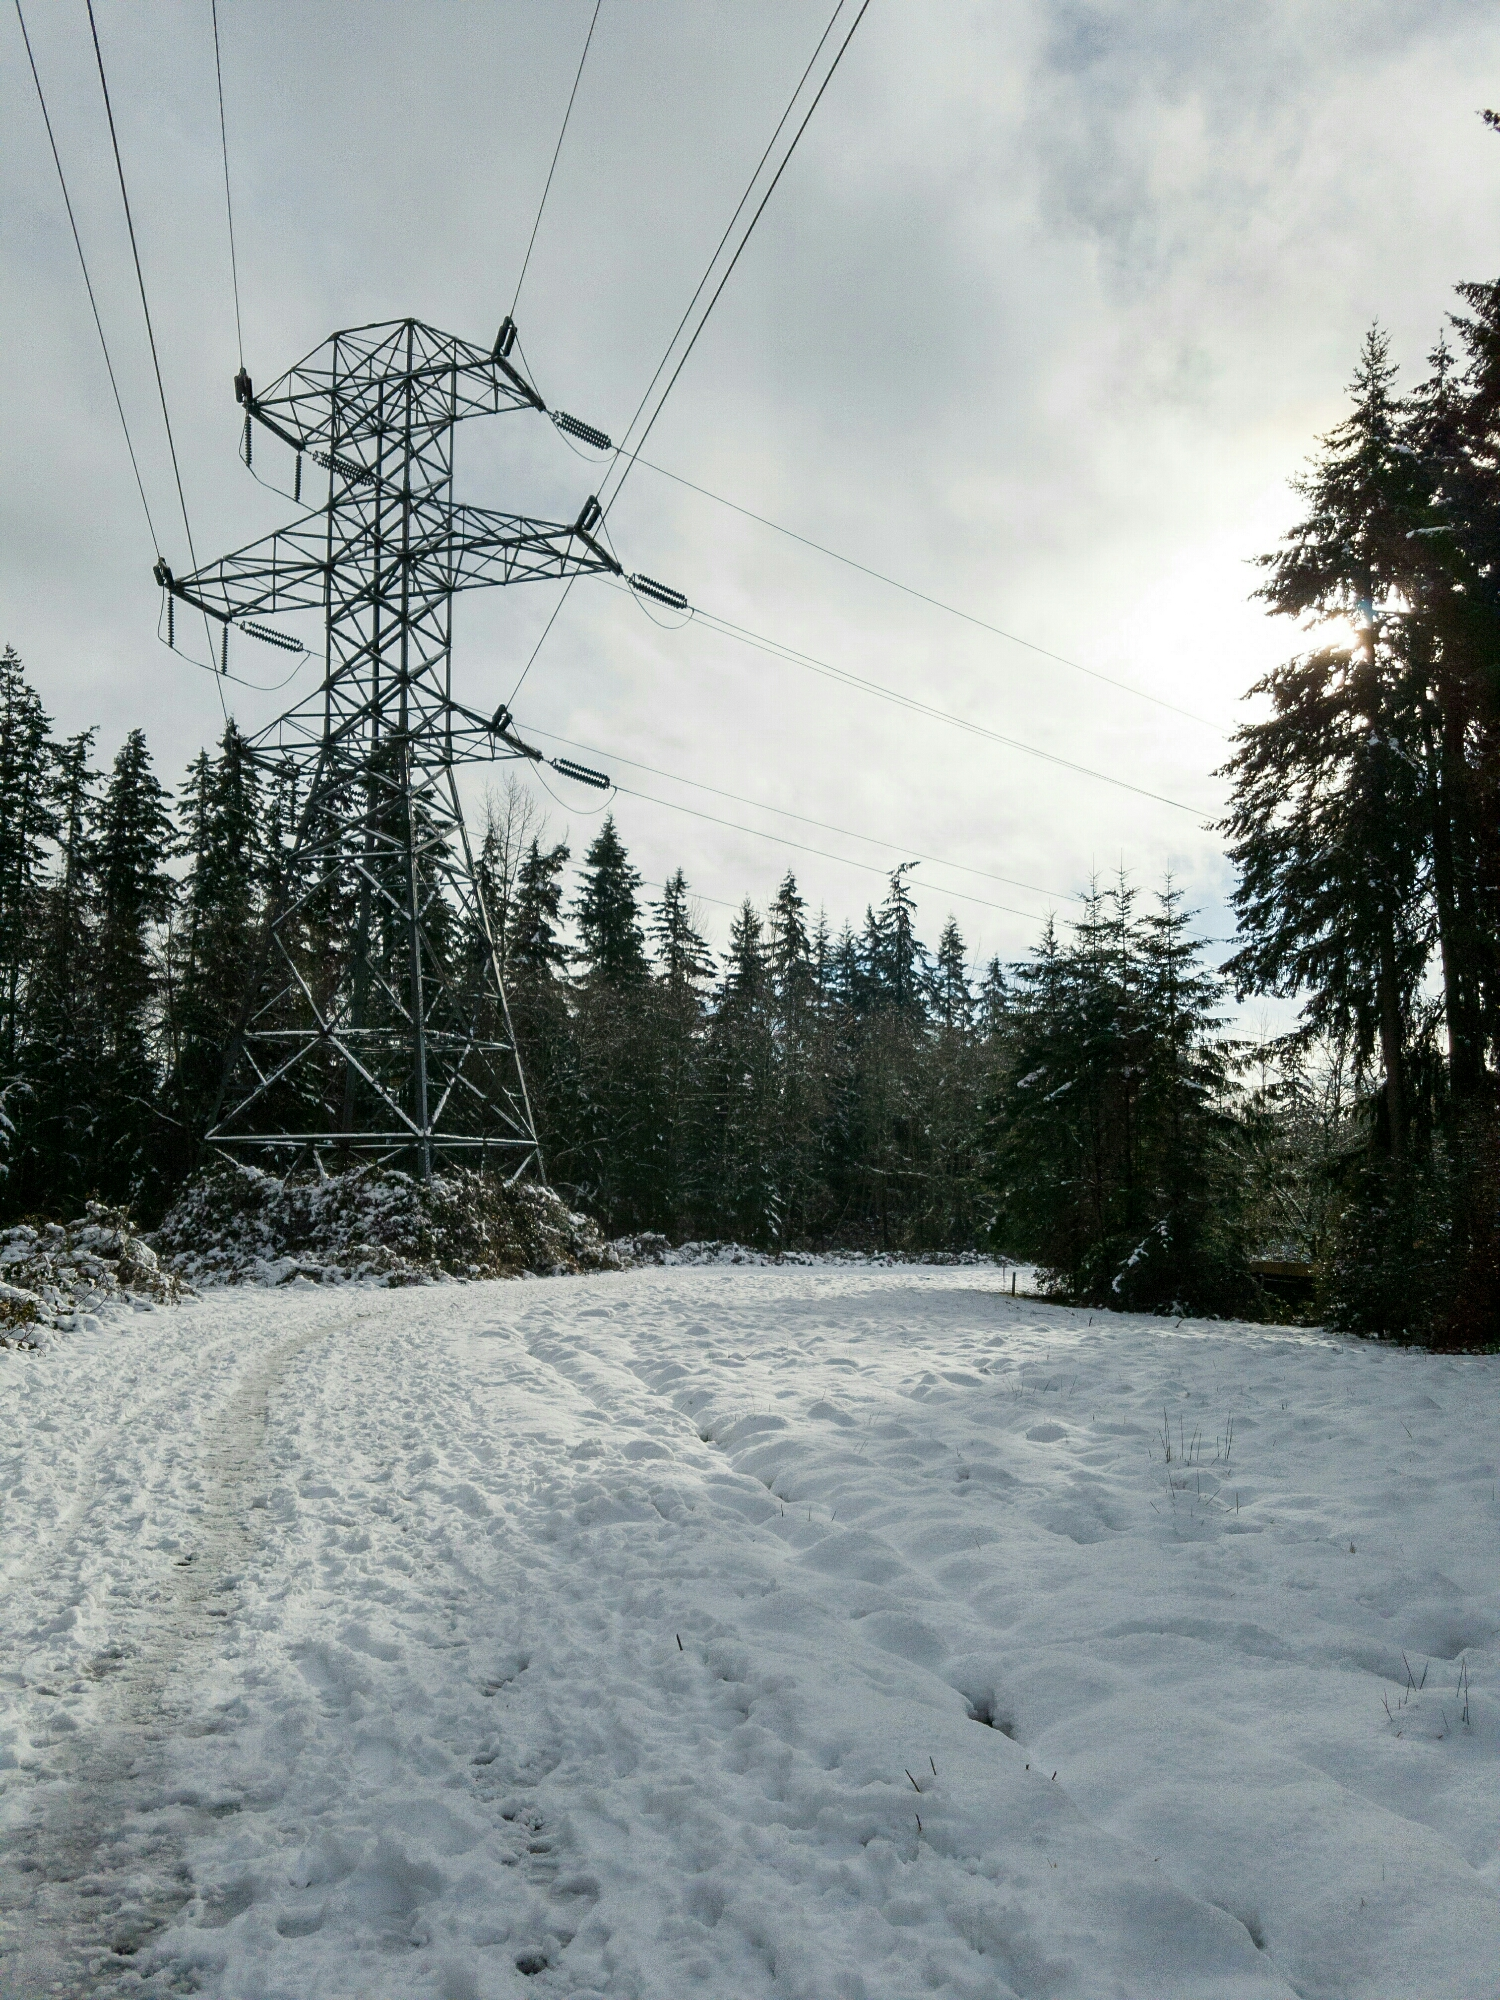 Not my usual view on the Powerline Trail!